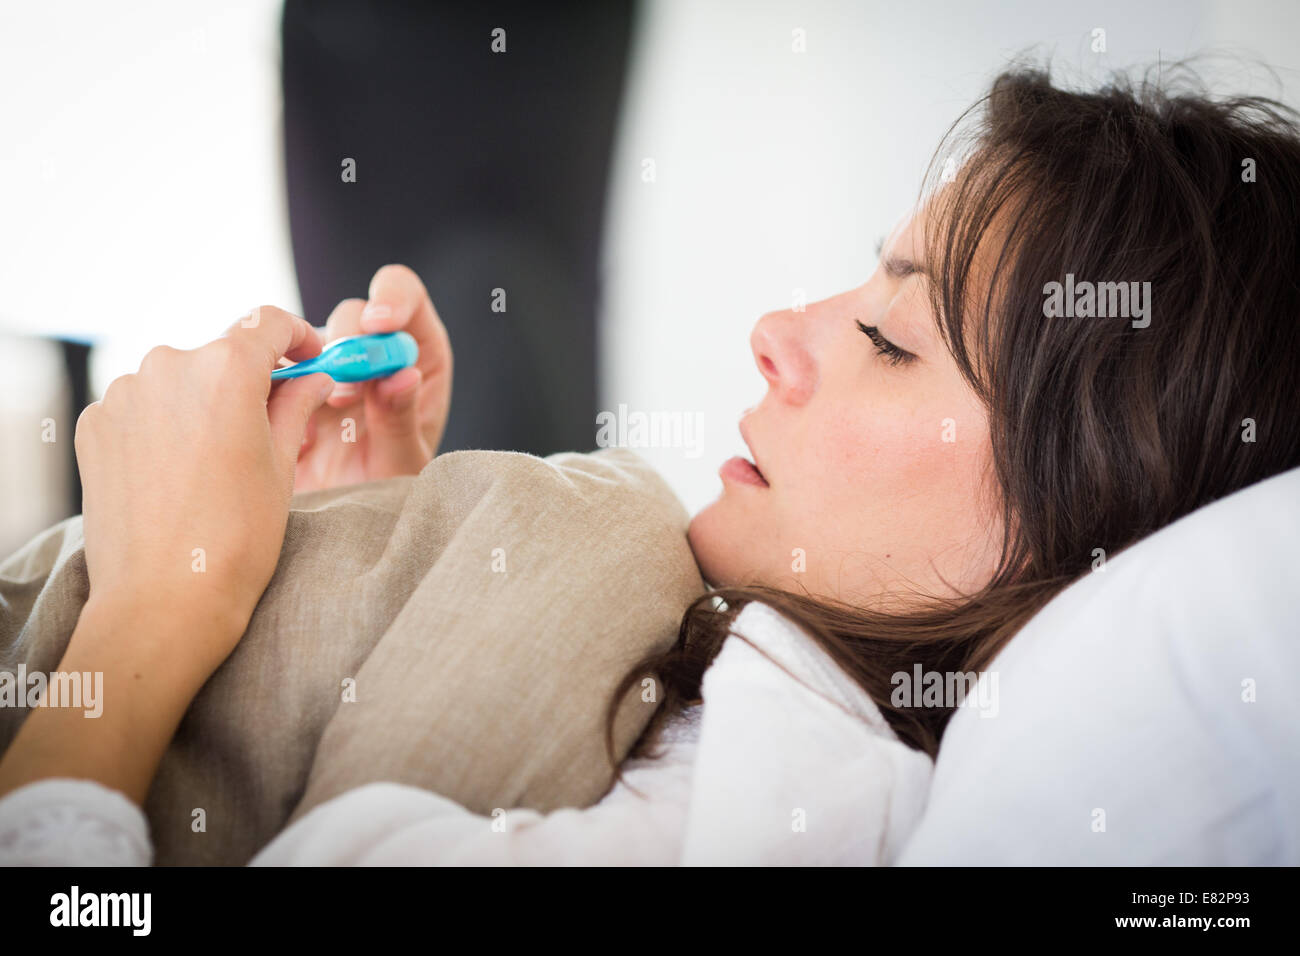 Woman checking her temperature with a digital thermometer. - Stock Image